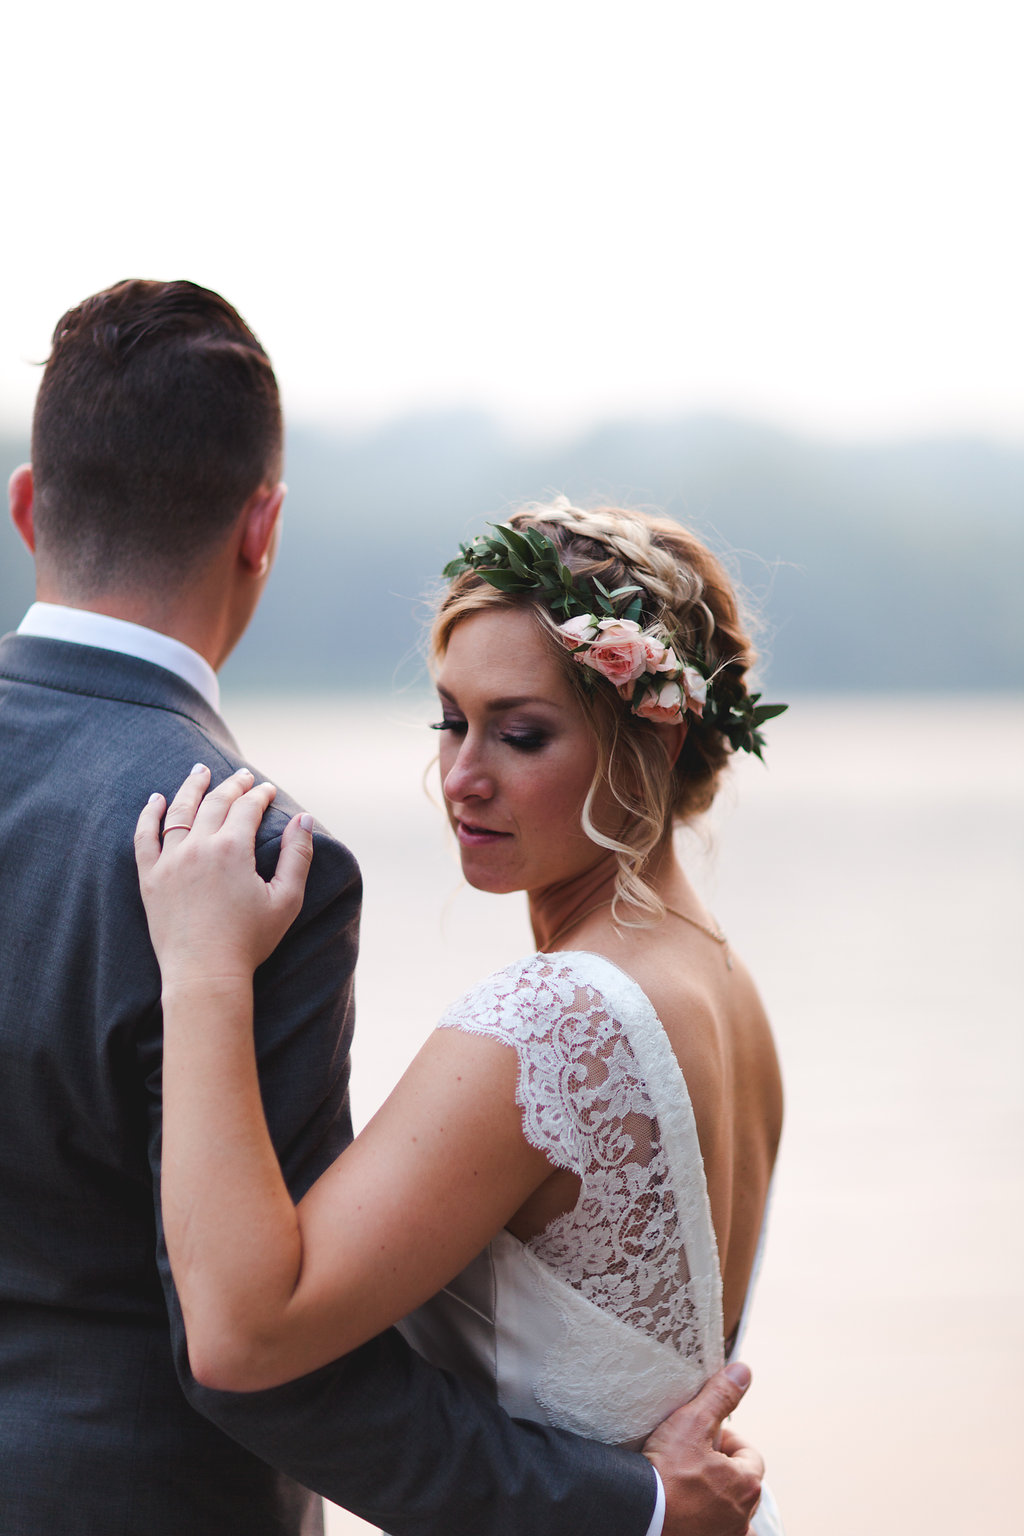 Bridalbliss.com | Portland Wedding | Oregon Event Planning and Design | The Handmade Fischers | Zest Floral